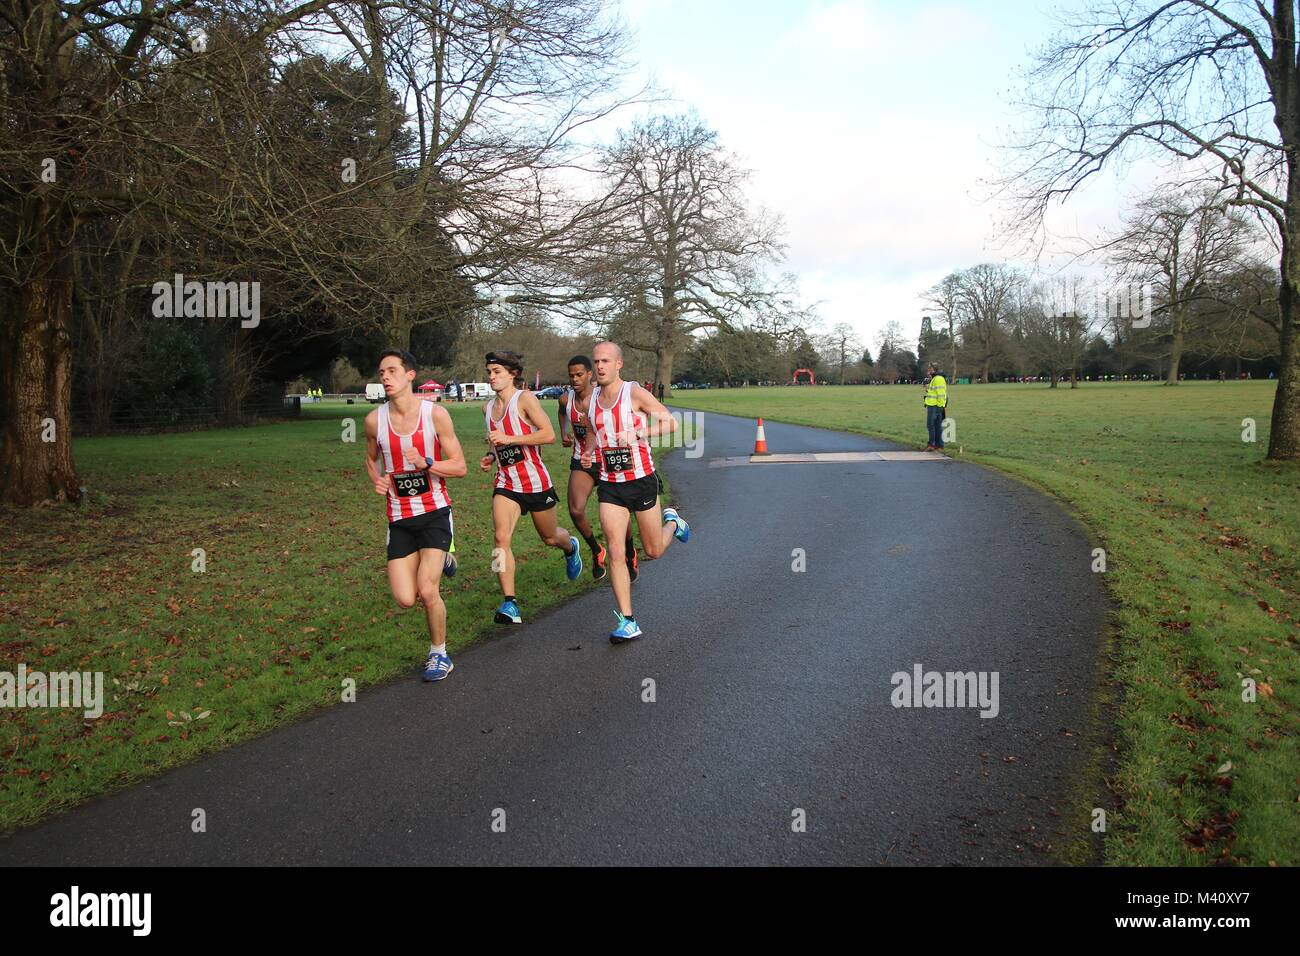 A group of male runners taking part in a race around historic Broadlands Estate near Romsey, Hampshire, England. - Stock Image